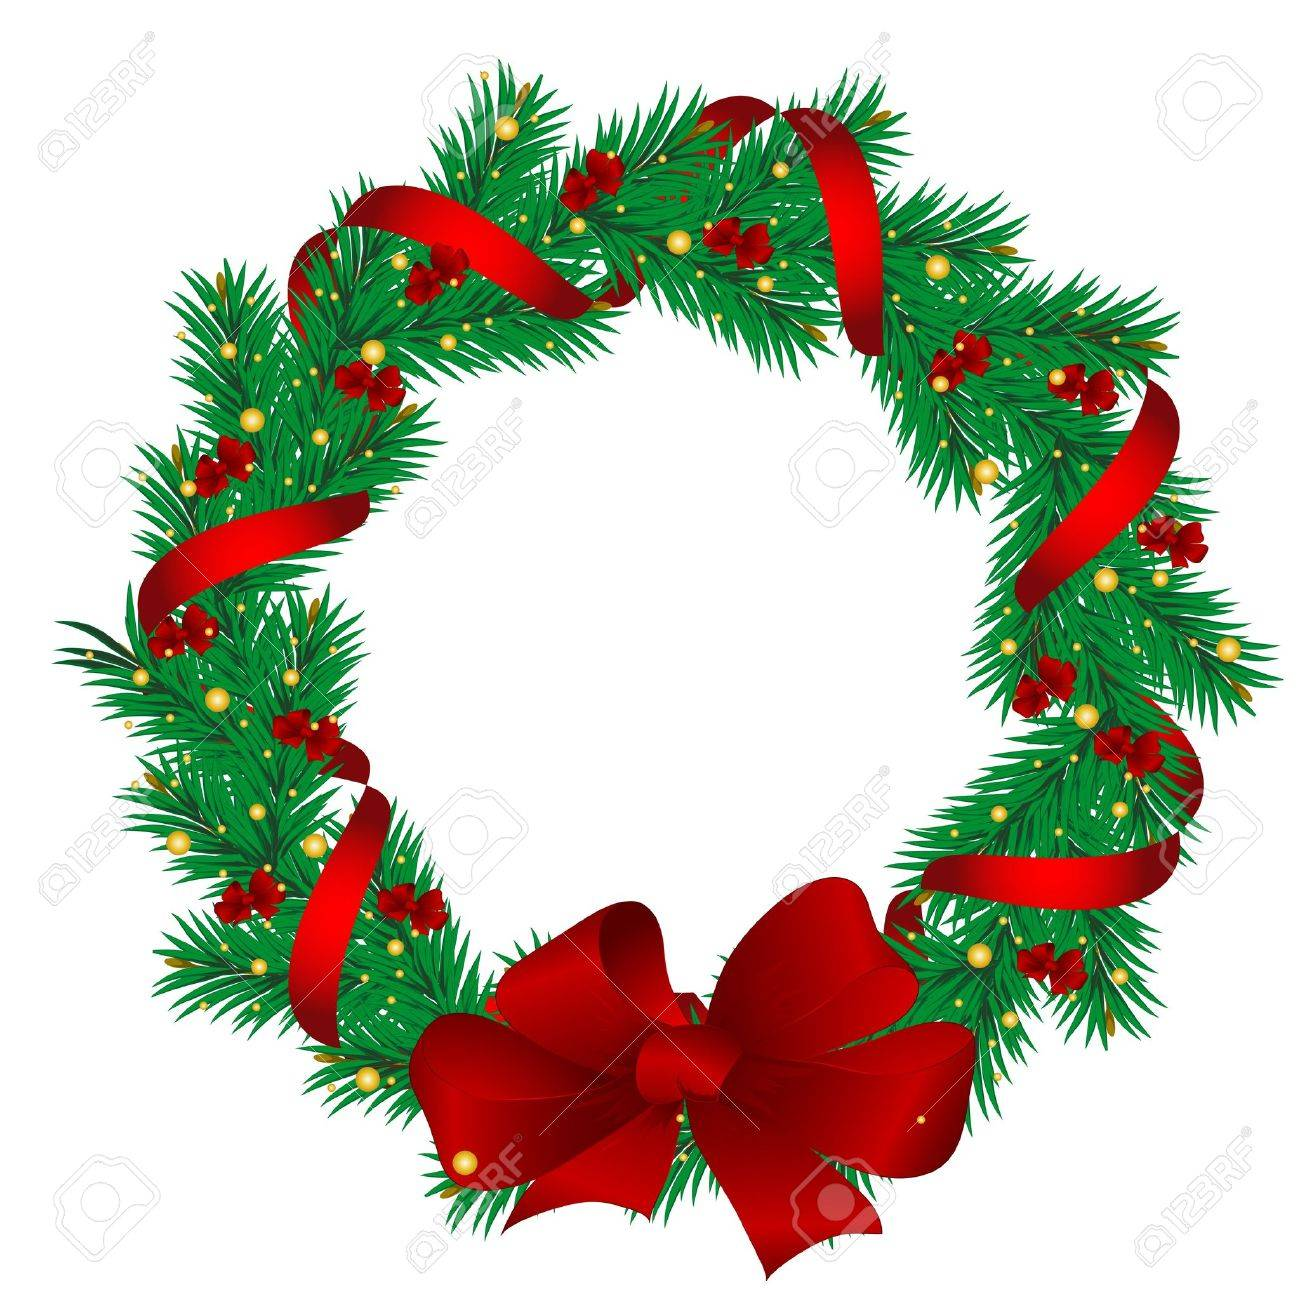 Christmas Garlands.Christmas Garlands Of The Pine Decorated With Red Tapes